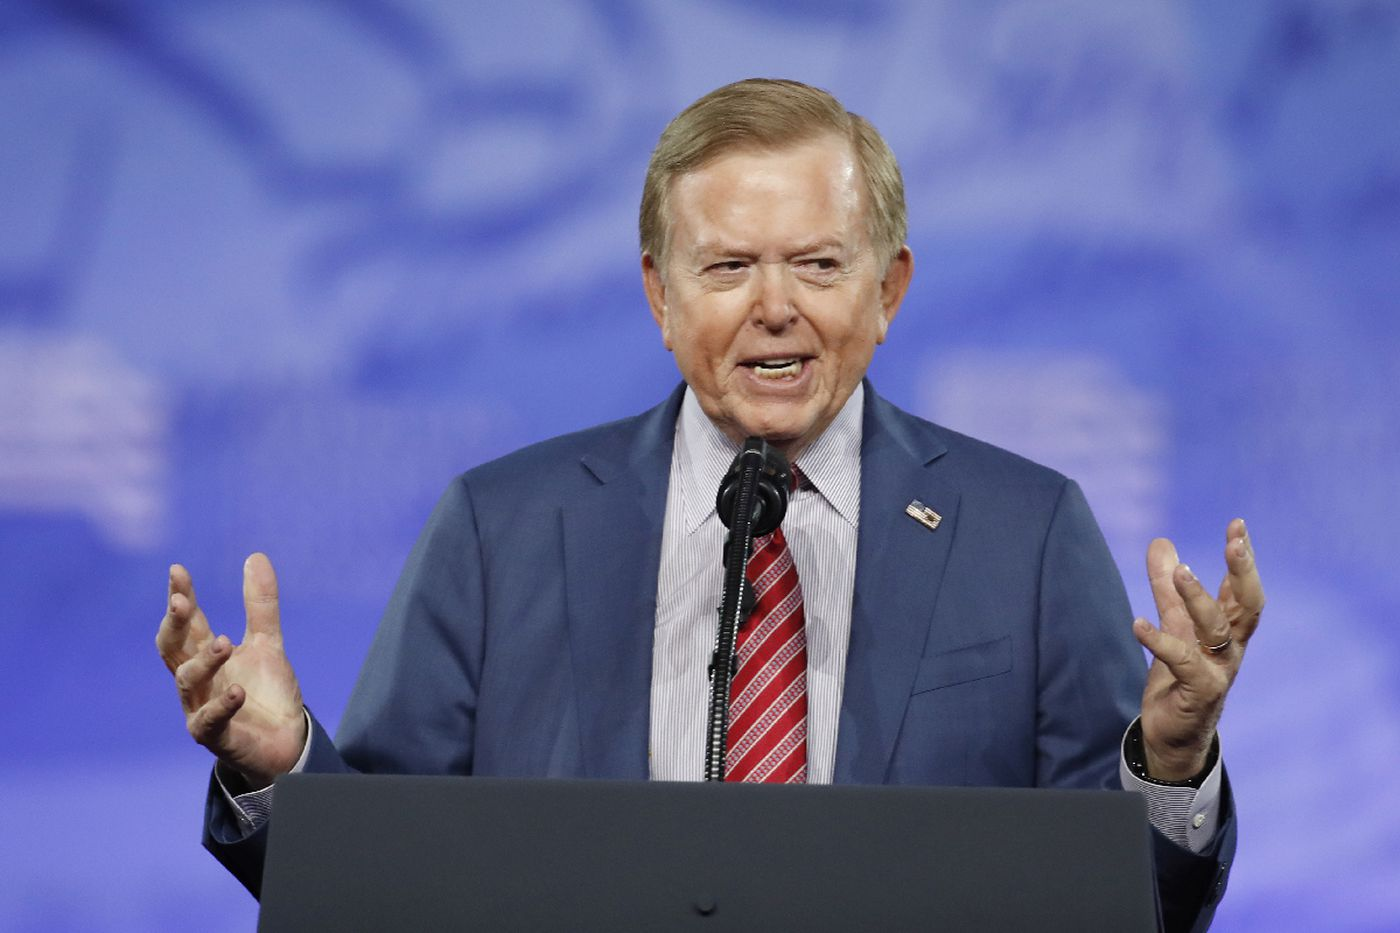 Fox host Lou Dobbs latest Trump ally to peddle baseless conspiracy theory about pipe bombs